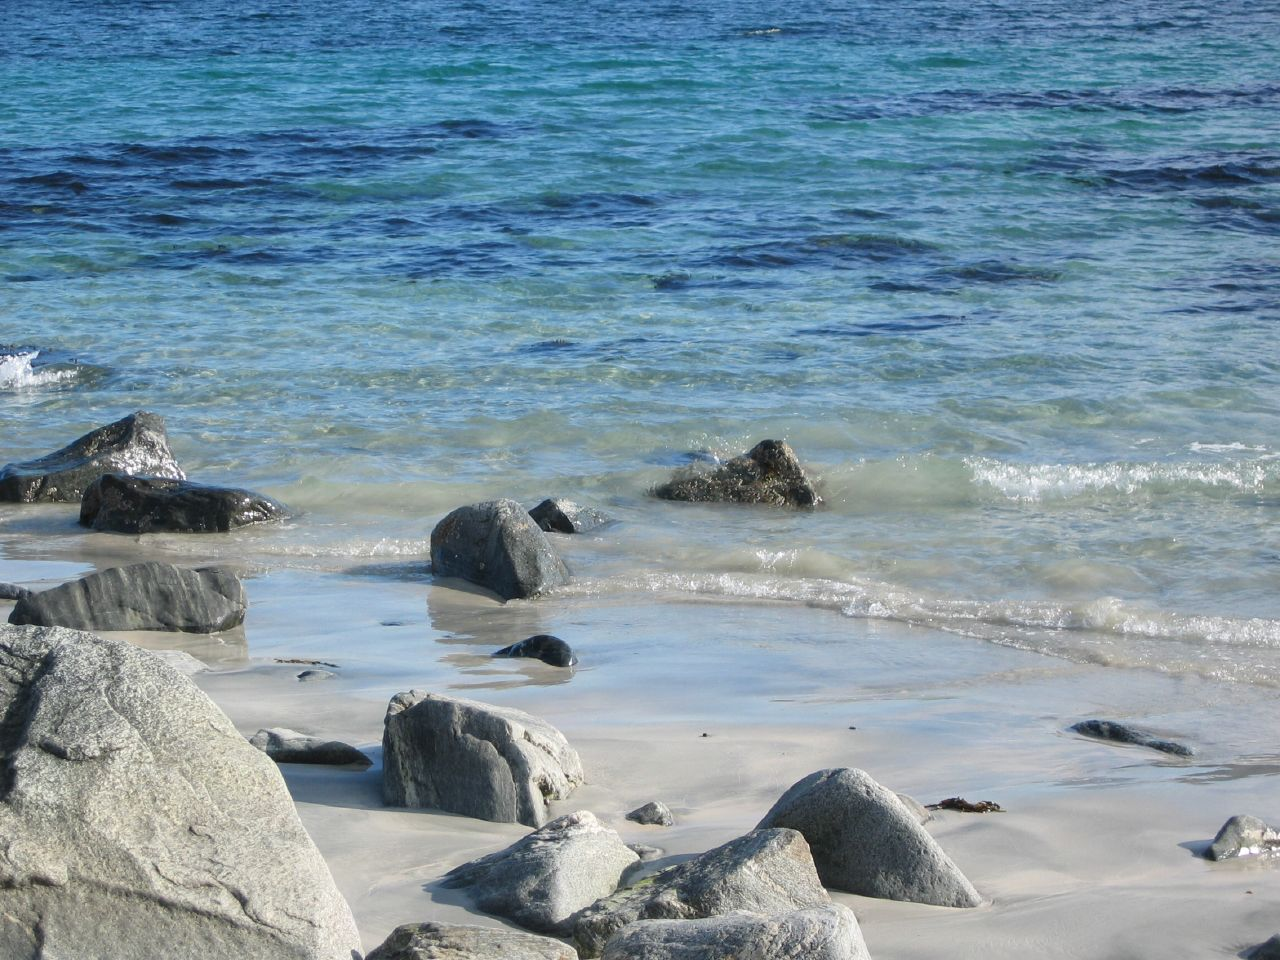 File:Giske beach rocks.jpg